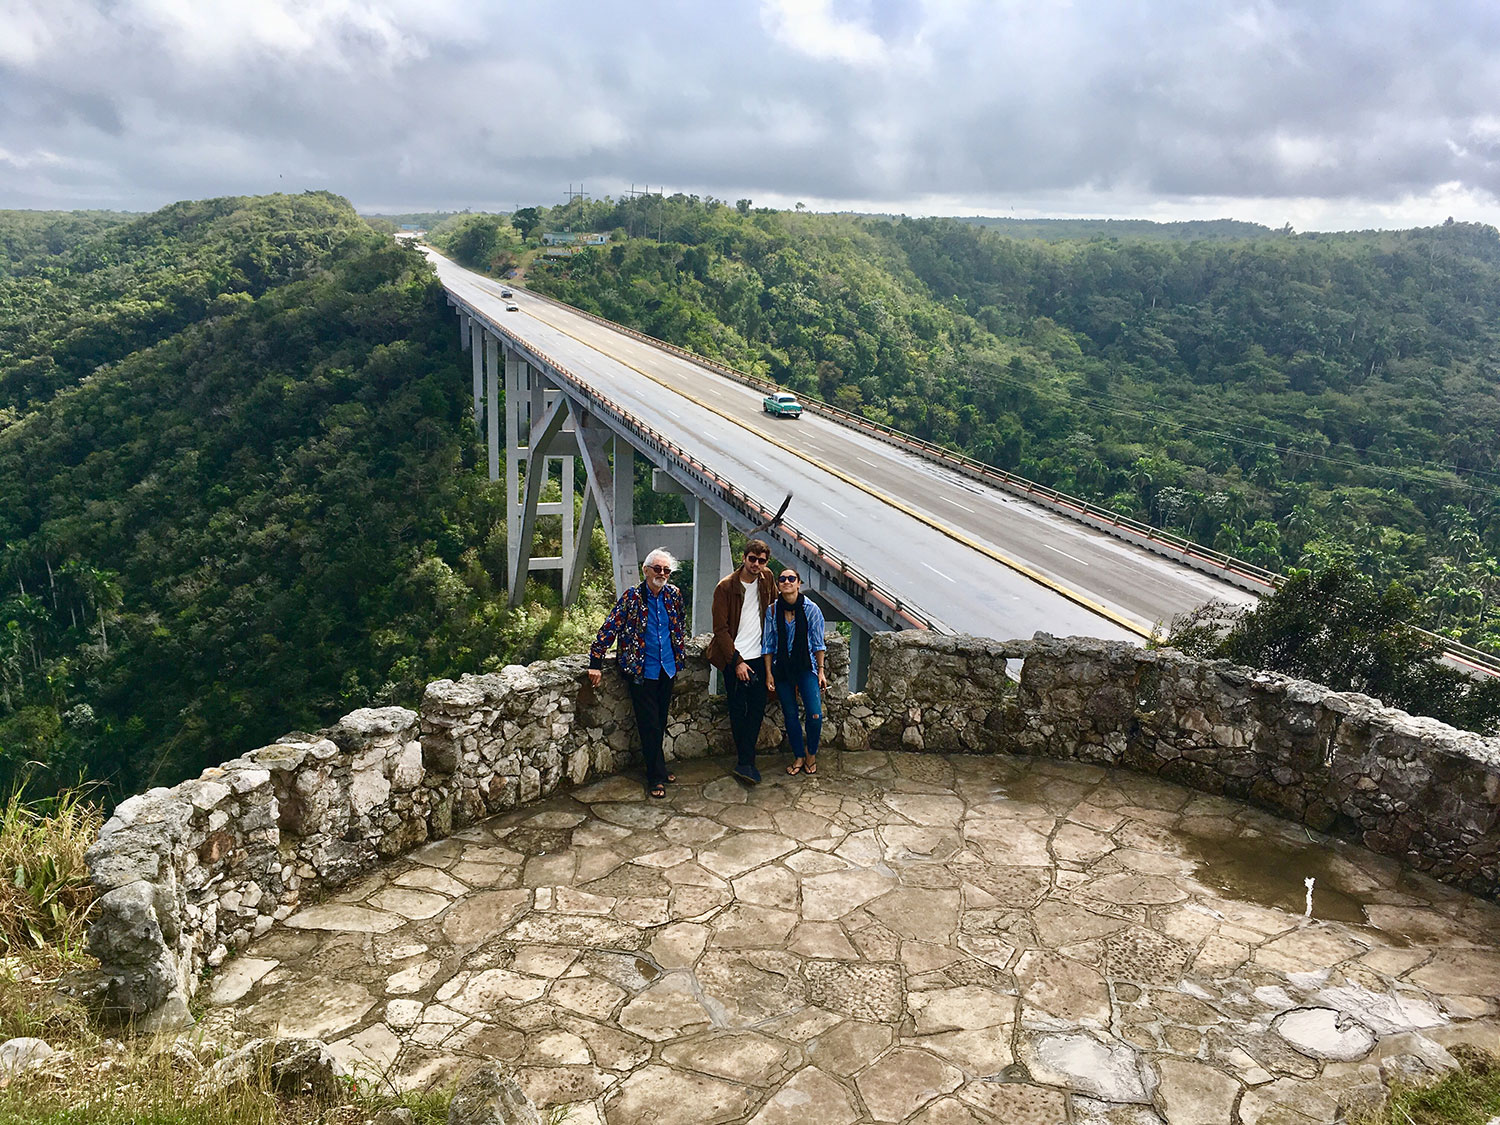 A must stop on the way from Havana to Varadero: Bacunayagua Bridge, the highest bridge in Cuba. Great views and piña colada. And food!